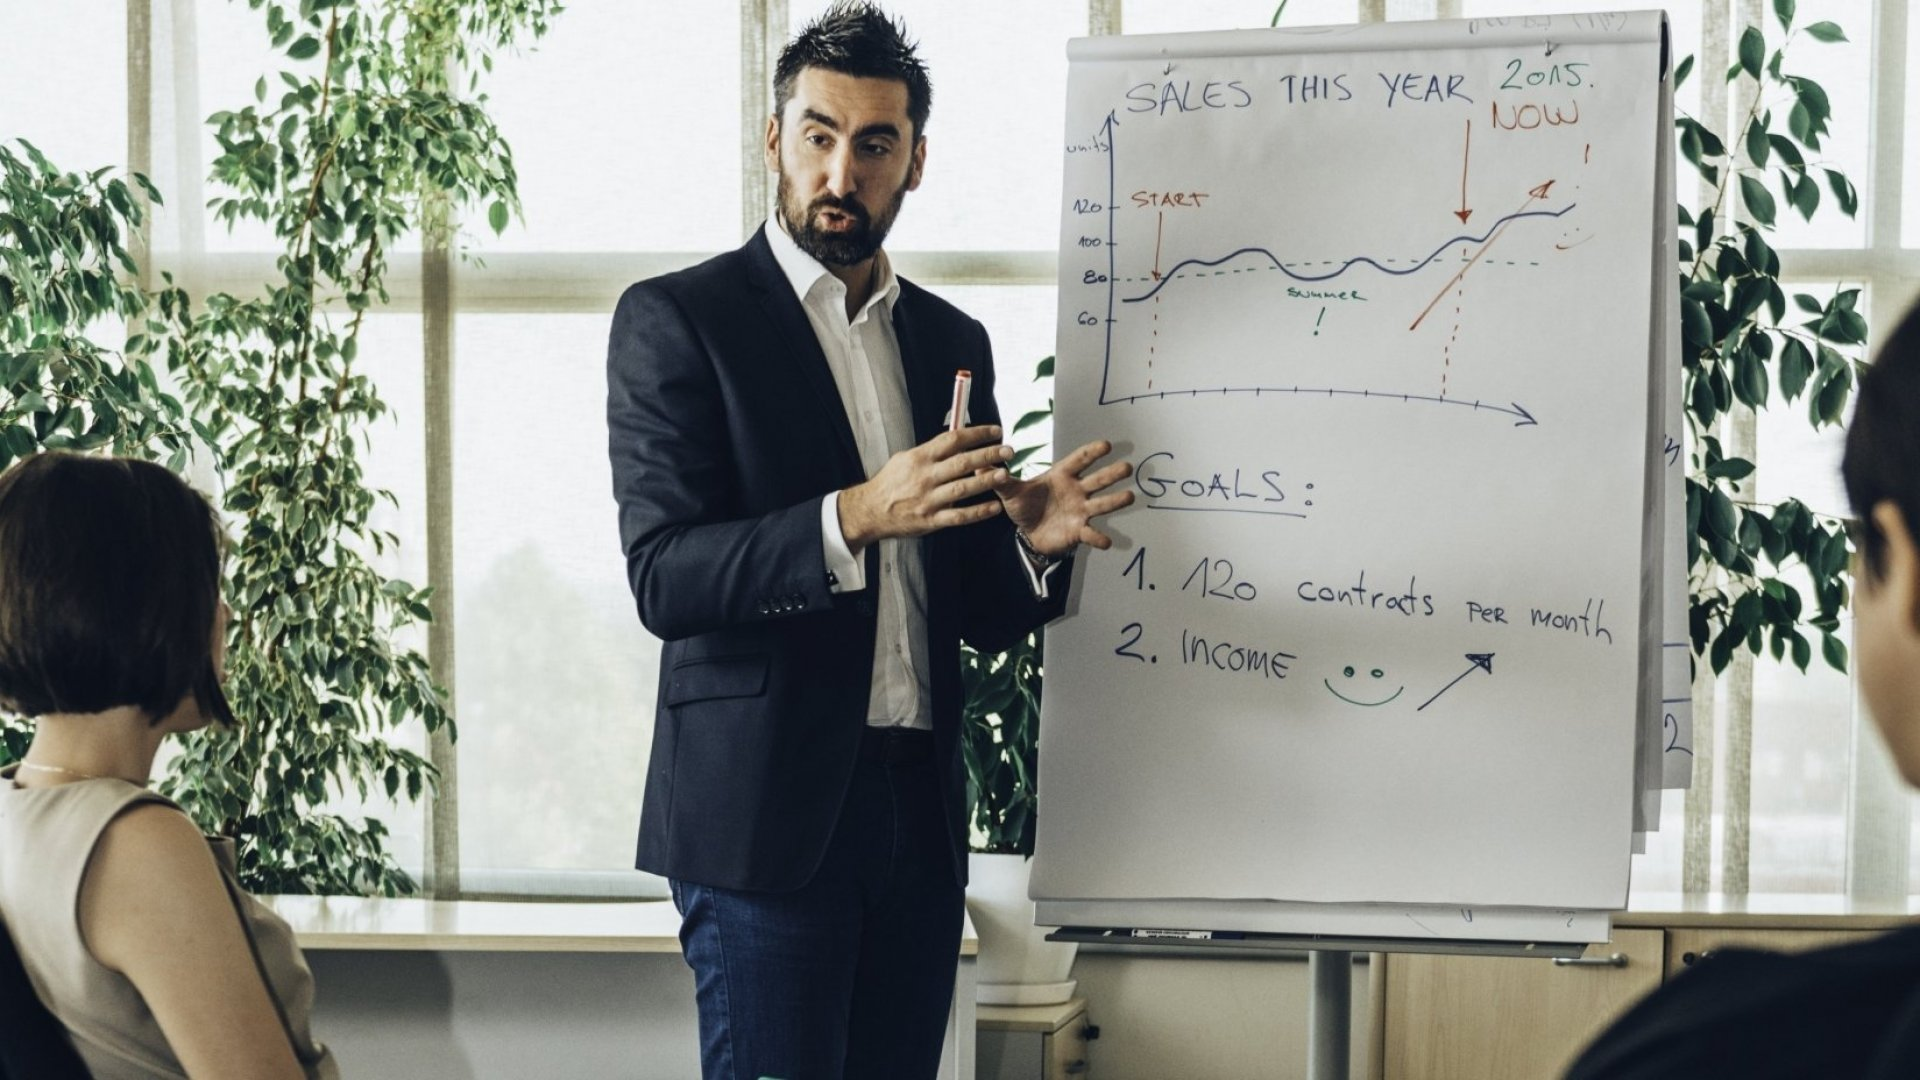 The One Sales Step that Most Sales People Miss